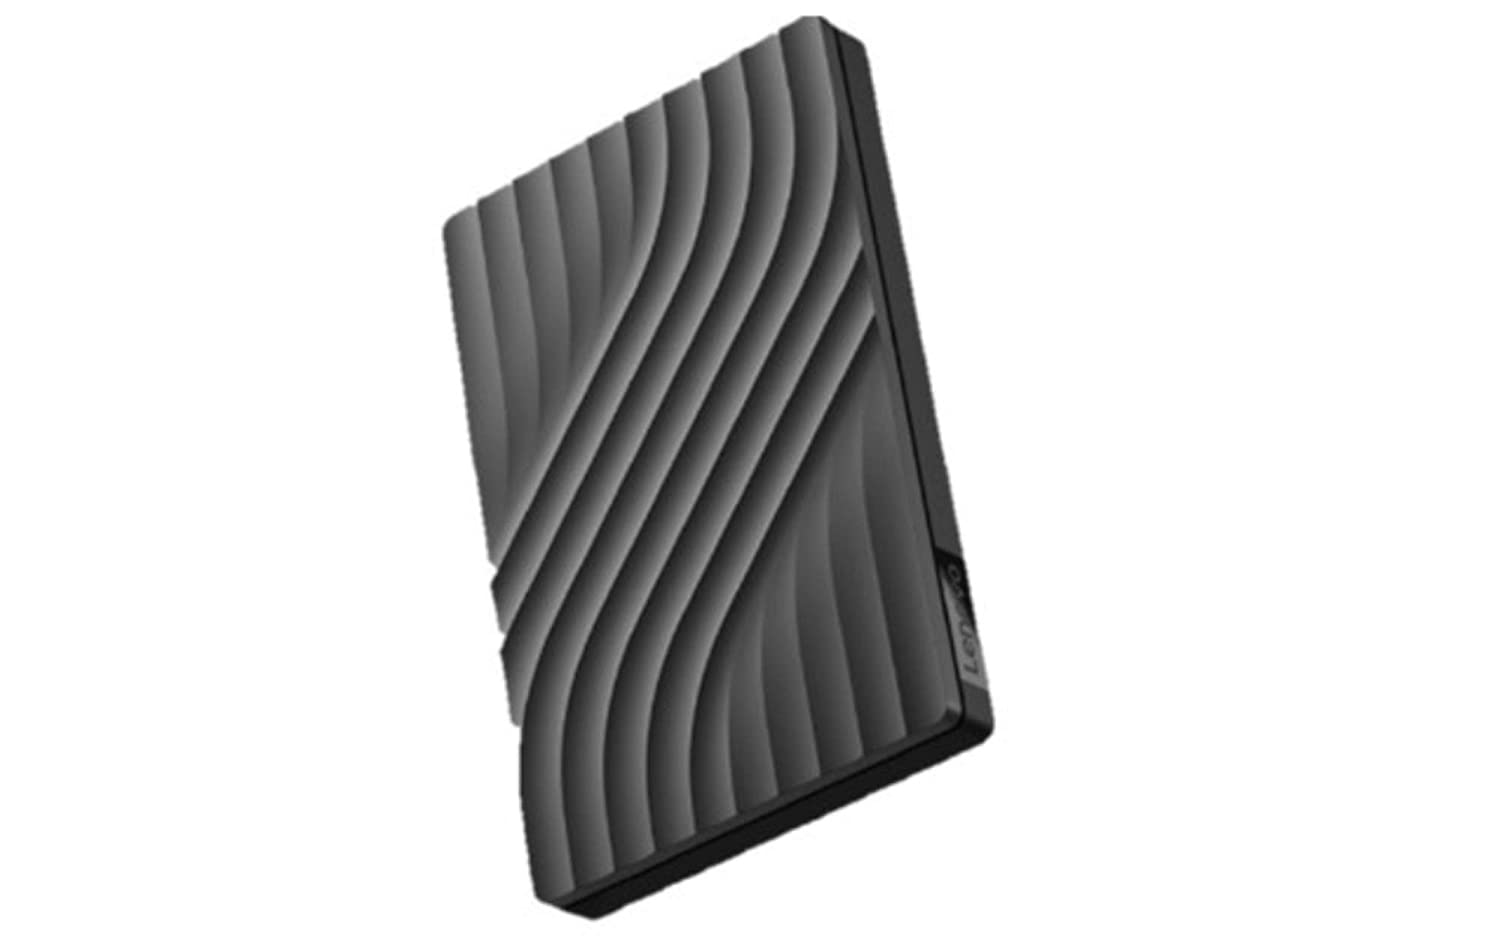 lenovo portable 1tb external hard disk